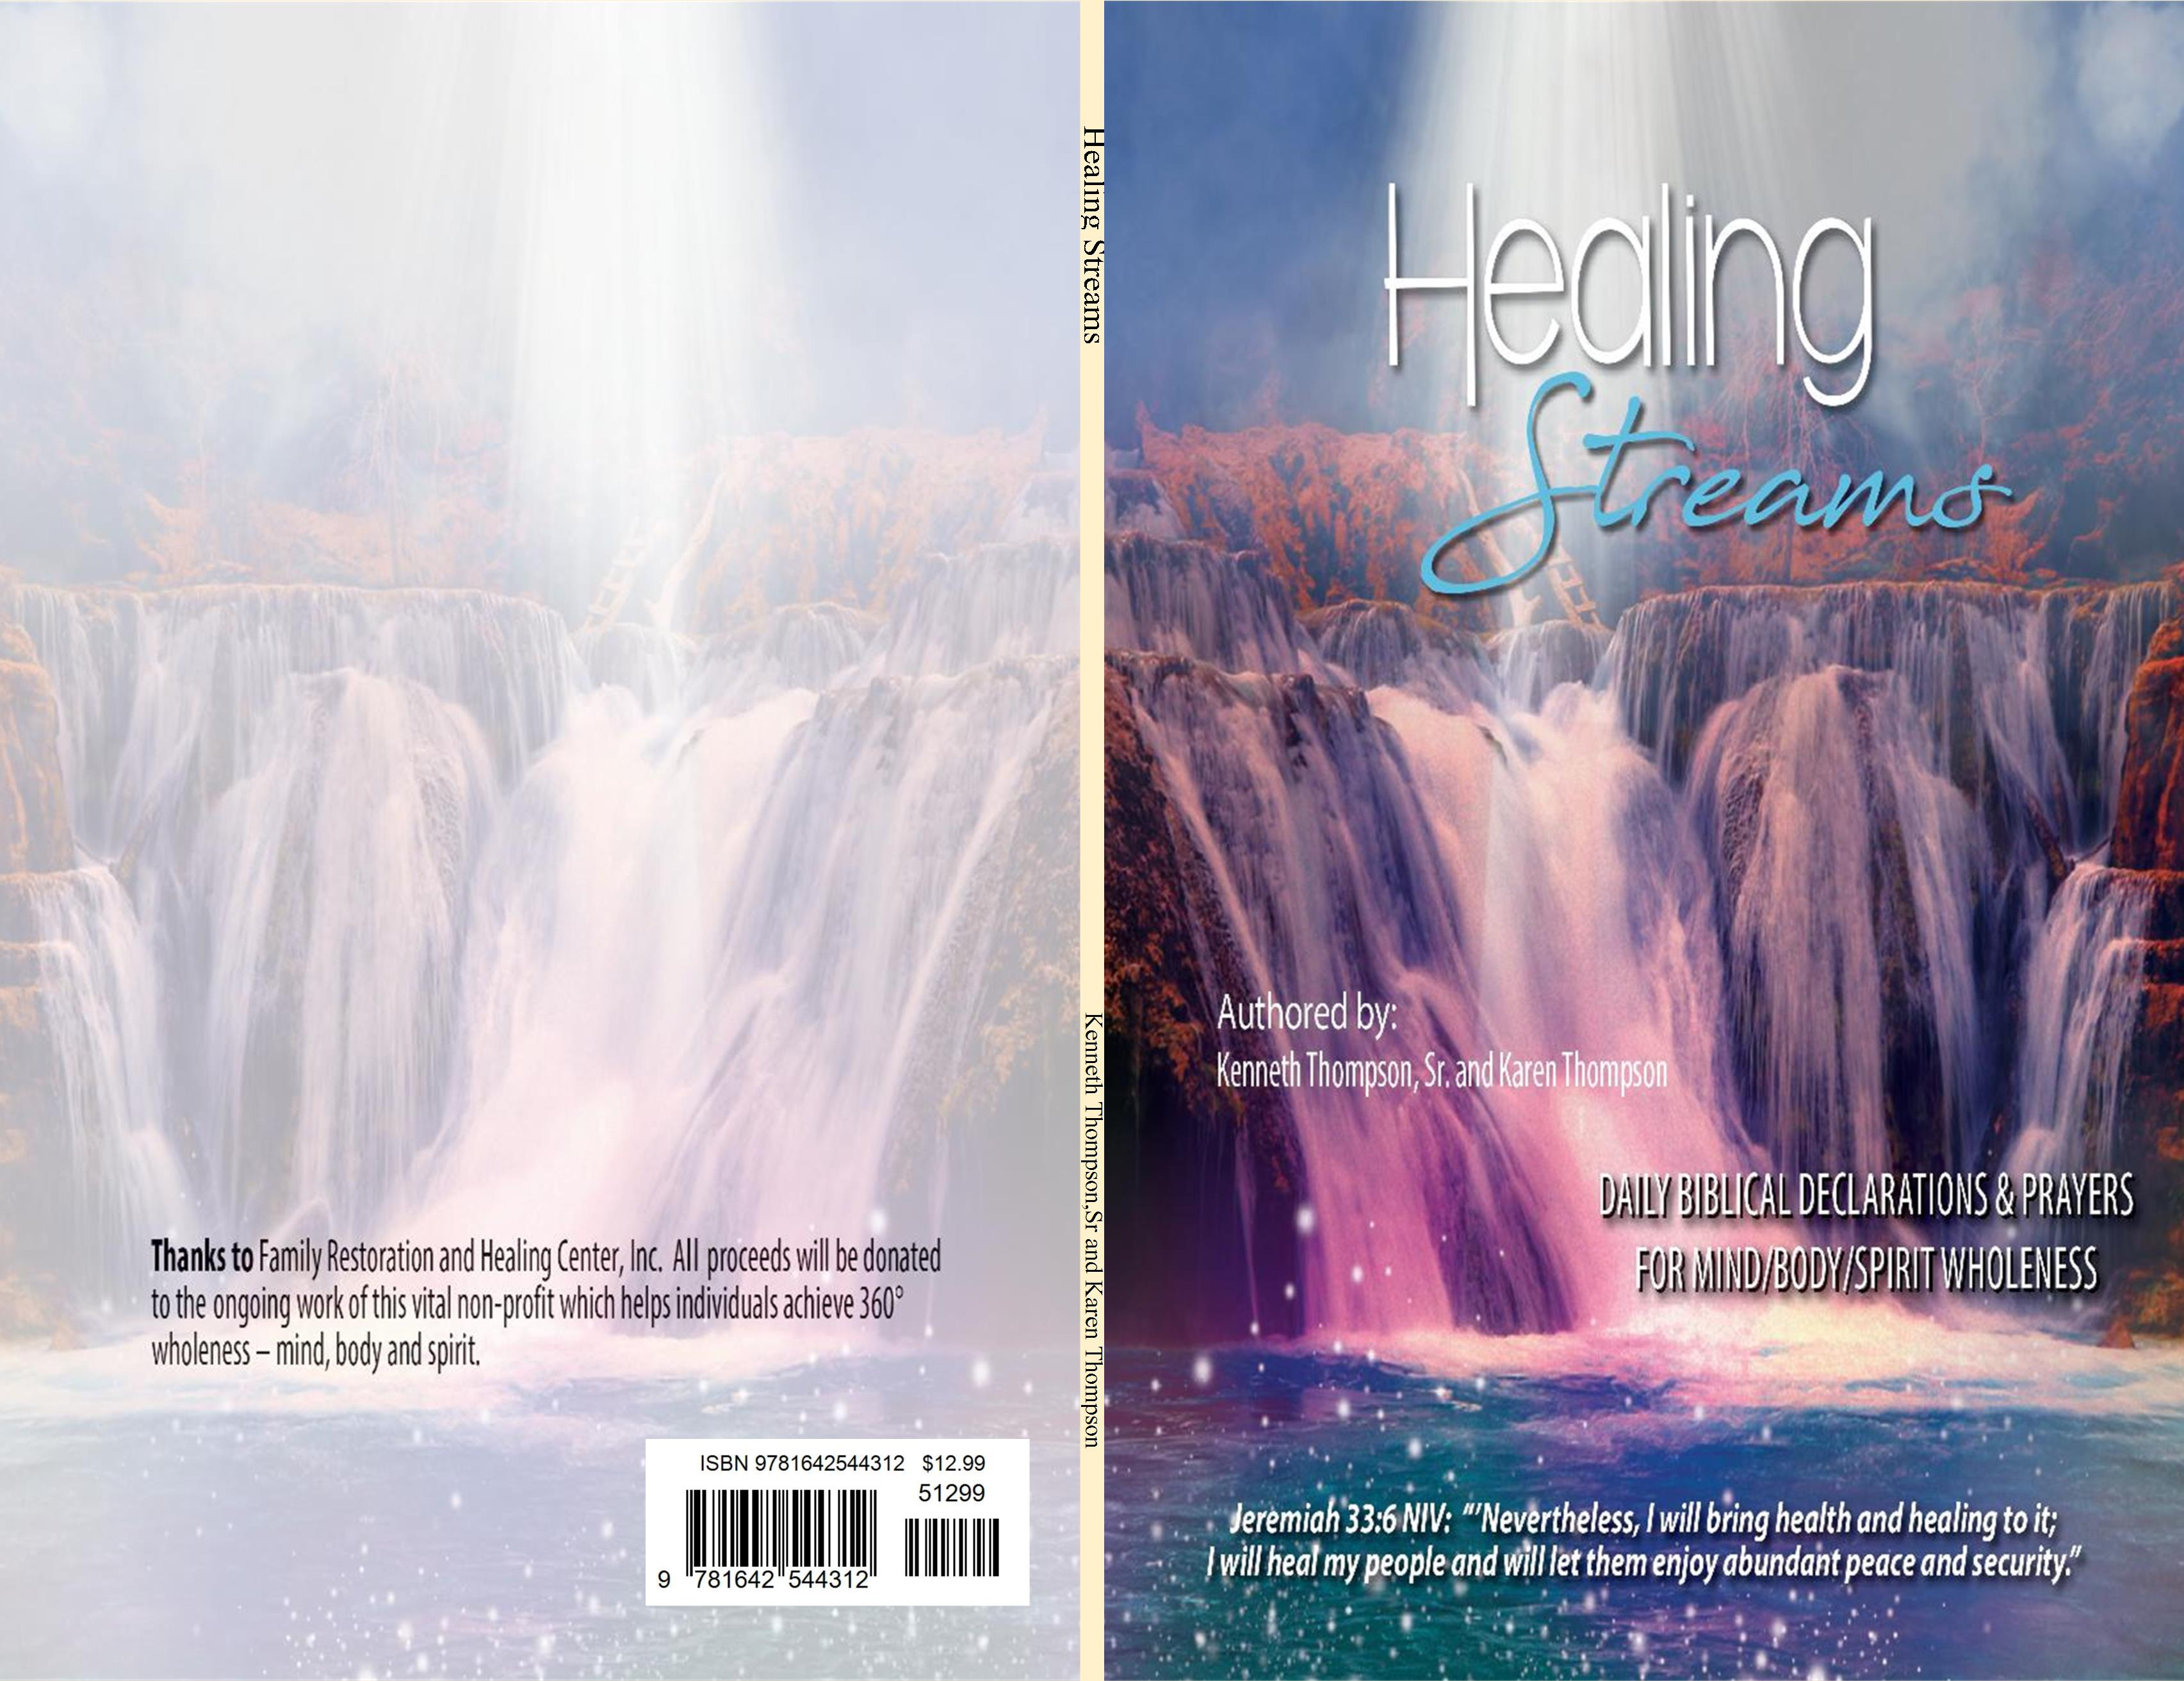 Healing Streams cover image